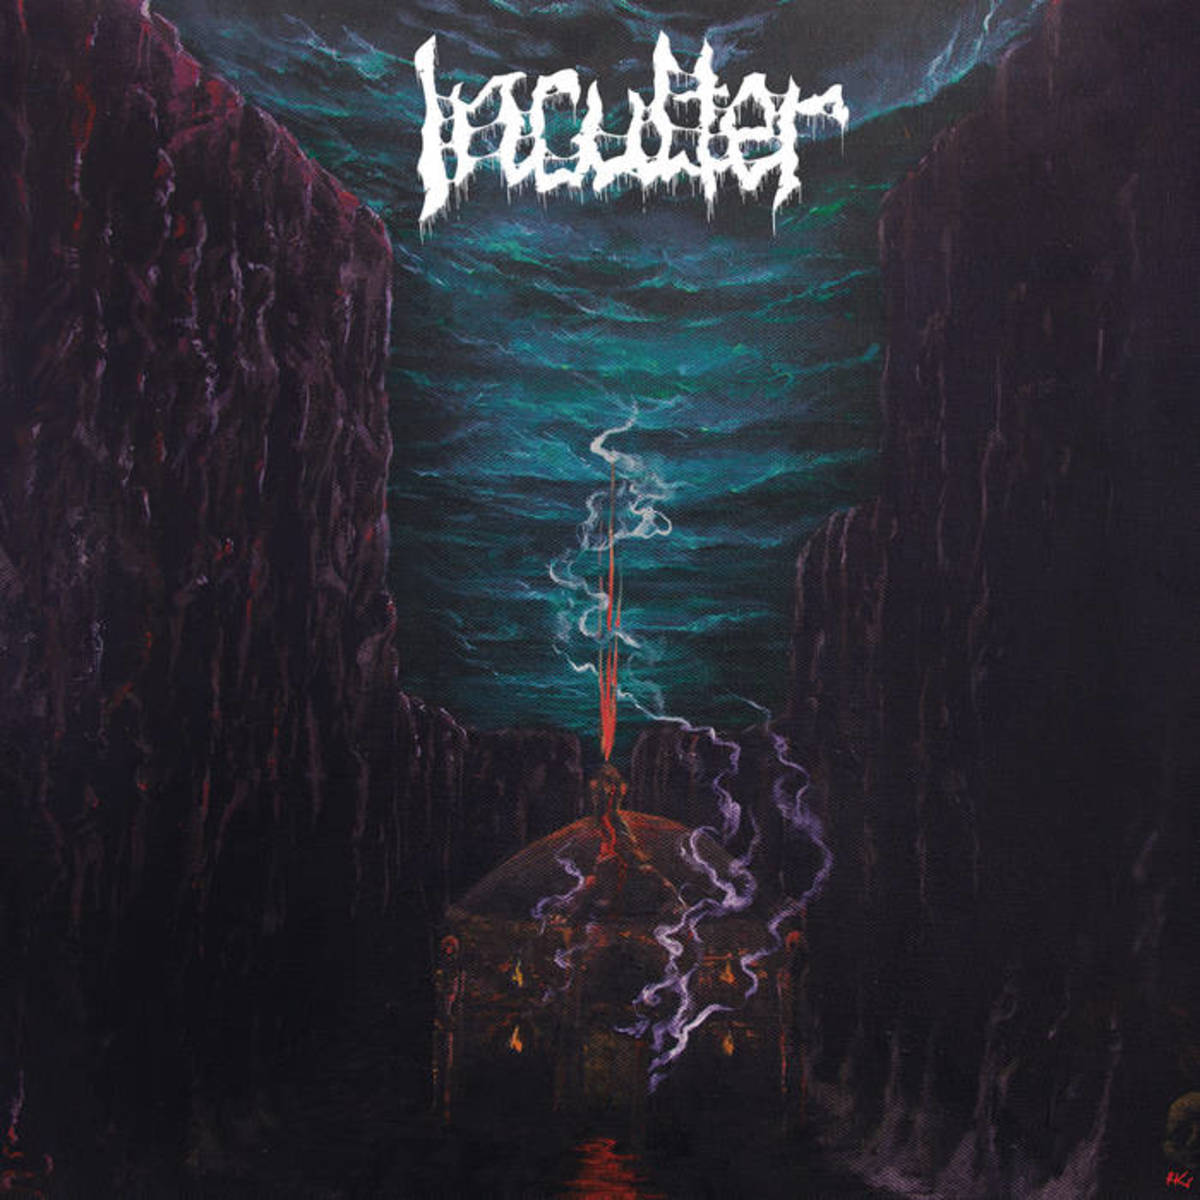 inculter-fatal-visions-album-review